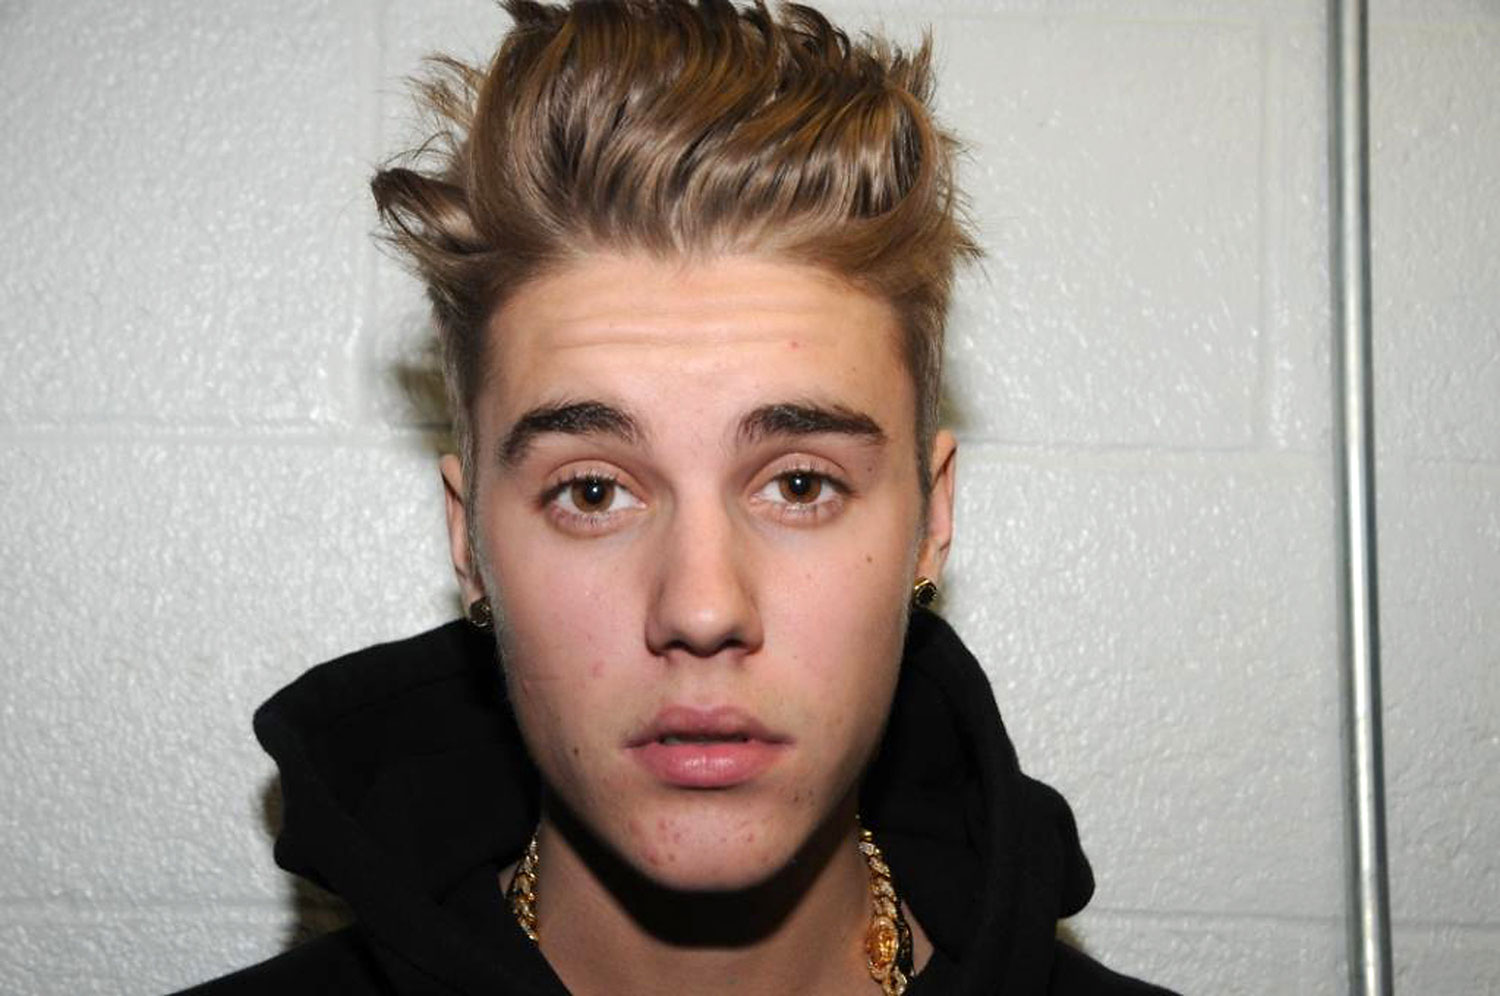 Justin Bieber is photographed by police while in custody on January 23, 2014 in Miami Beach, Florida.